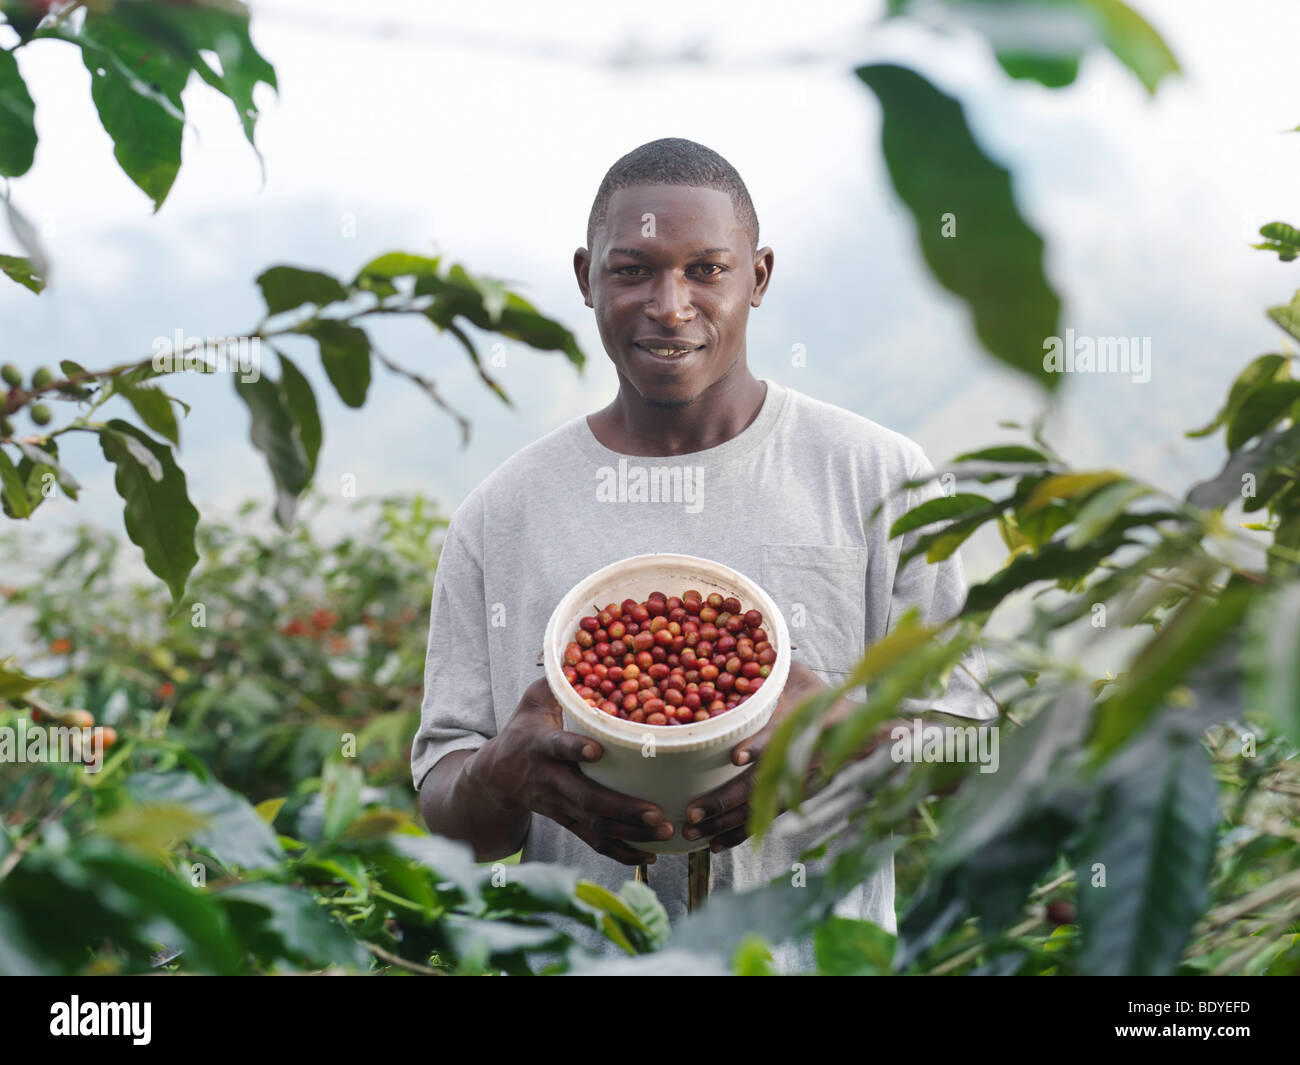 Worker With Coffee Beans In Tub - Stock Image